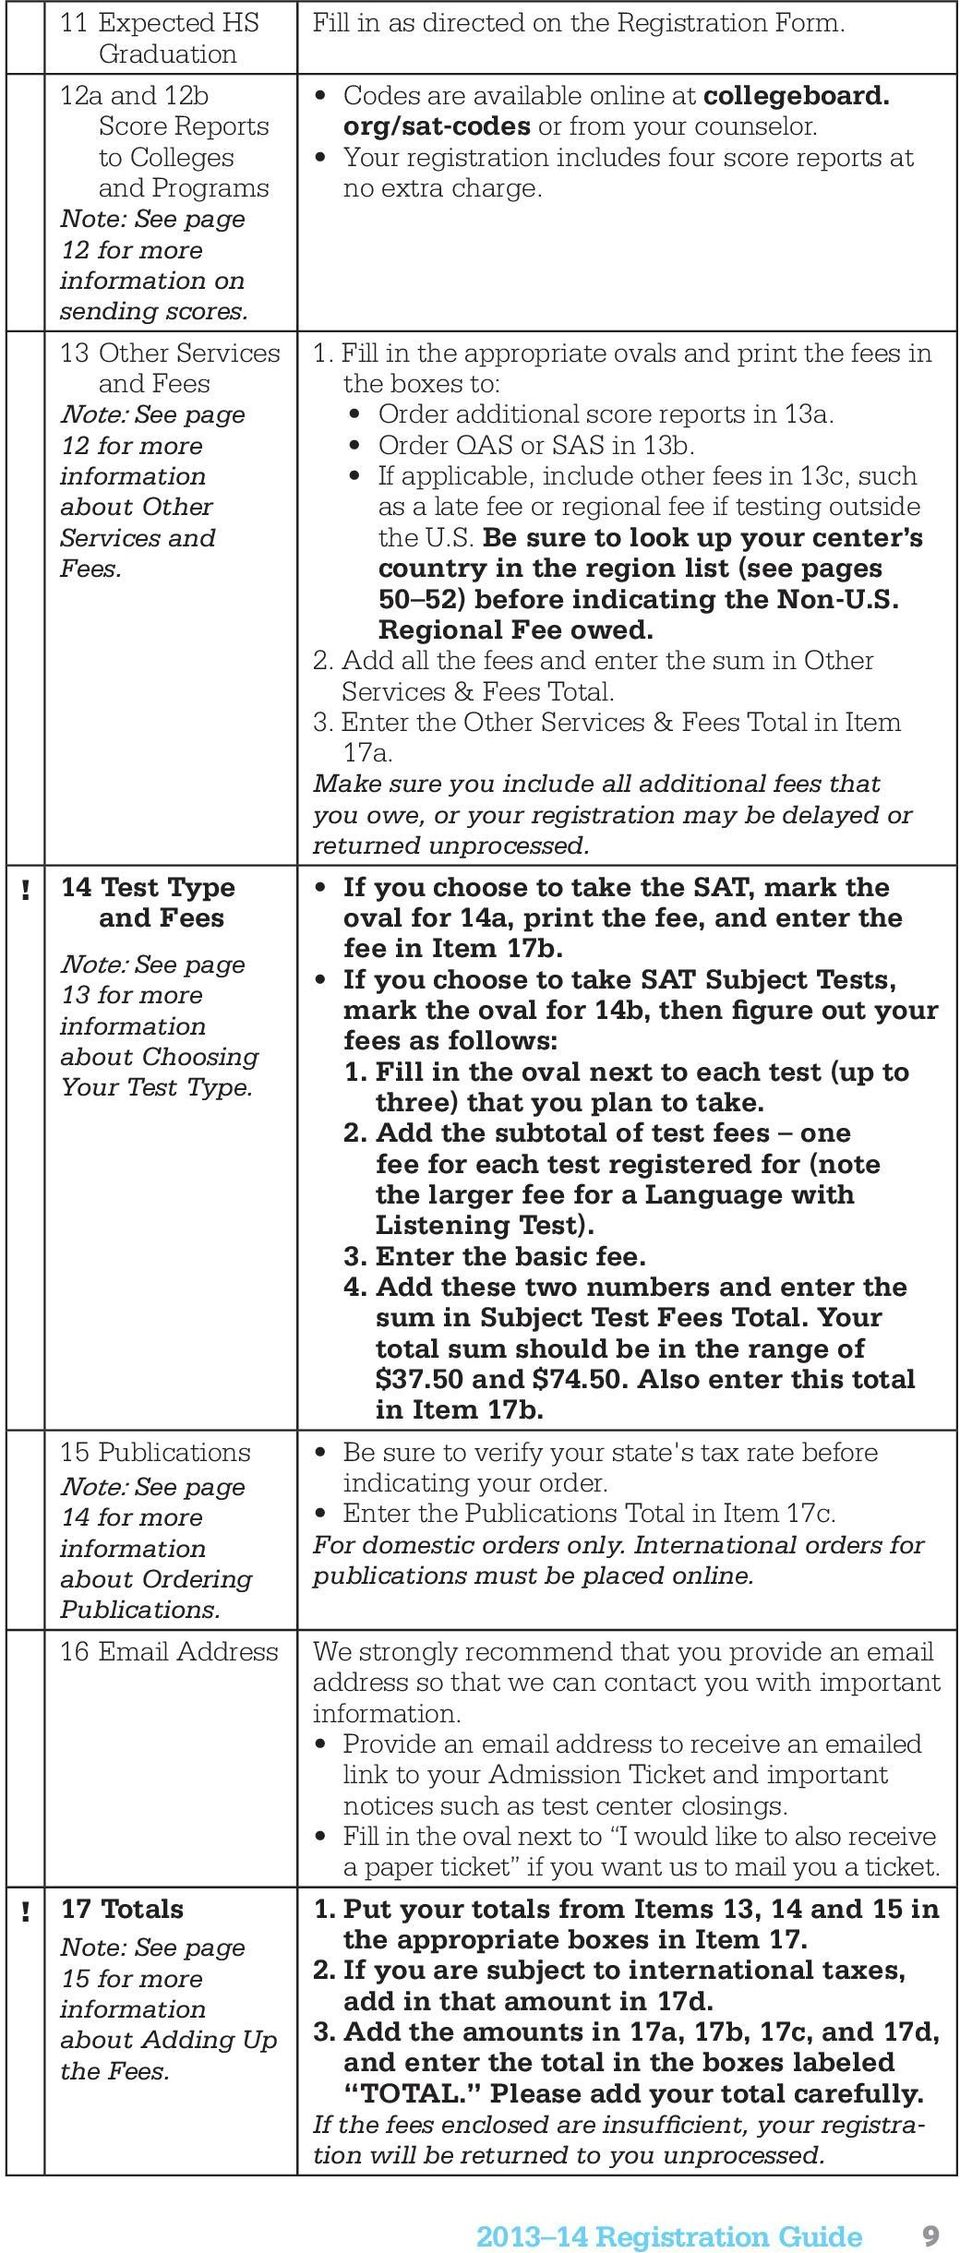 15 Publications Note: See page 14 for more information about Ordering Publications. Fill in as directed on the Registration Form. Codes are available online at collegeboard.